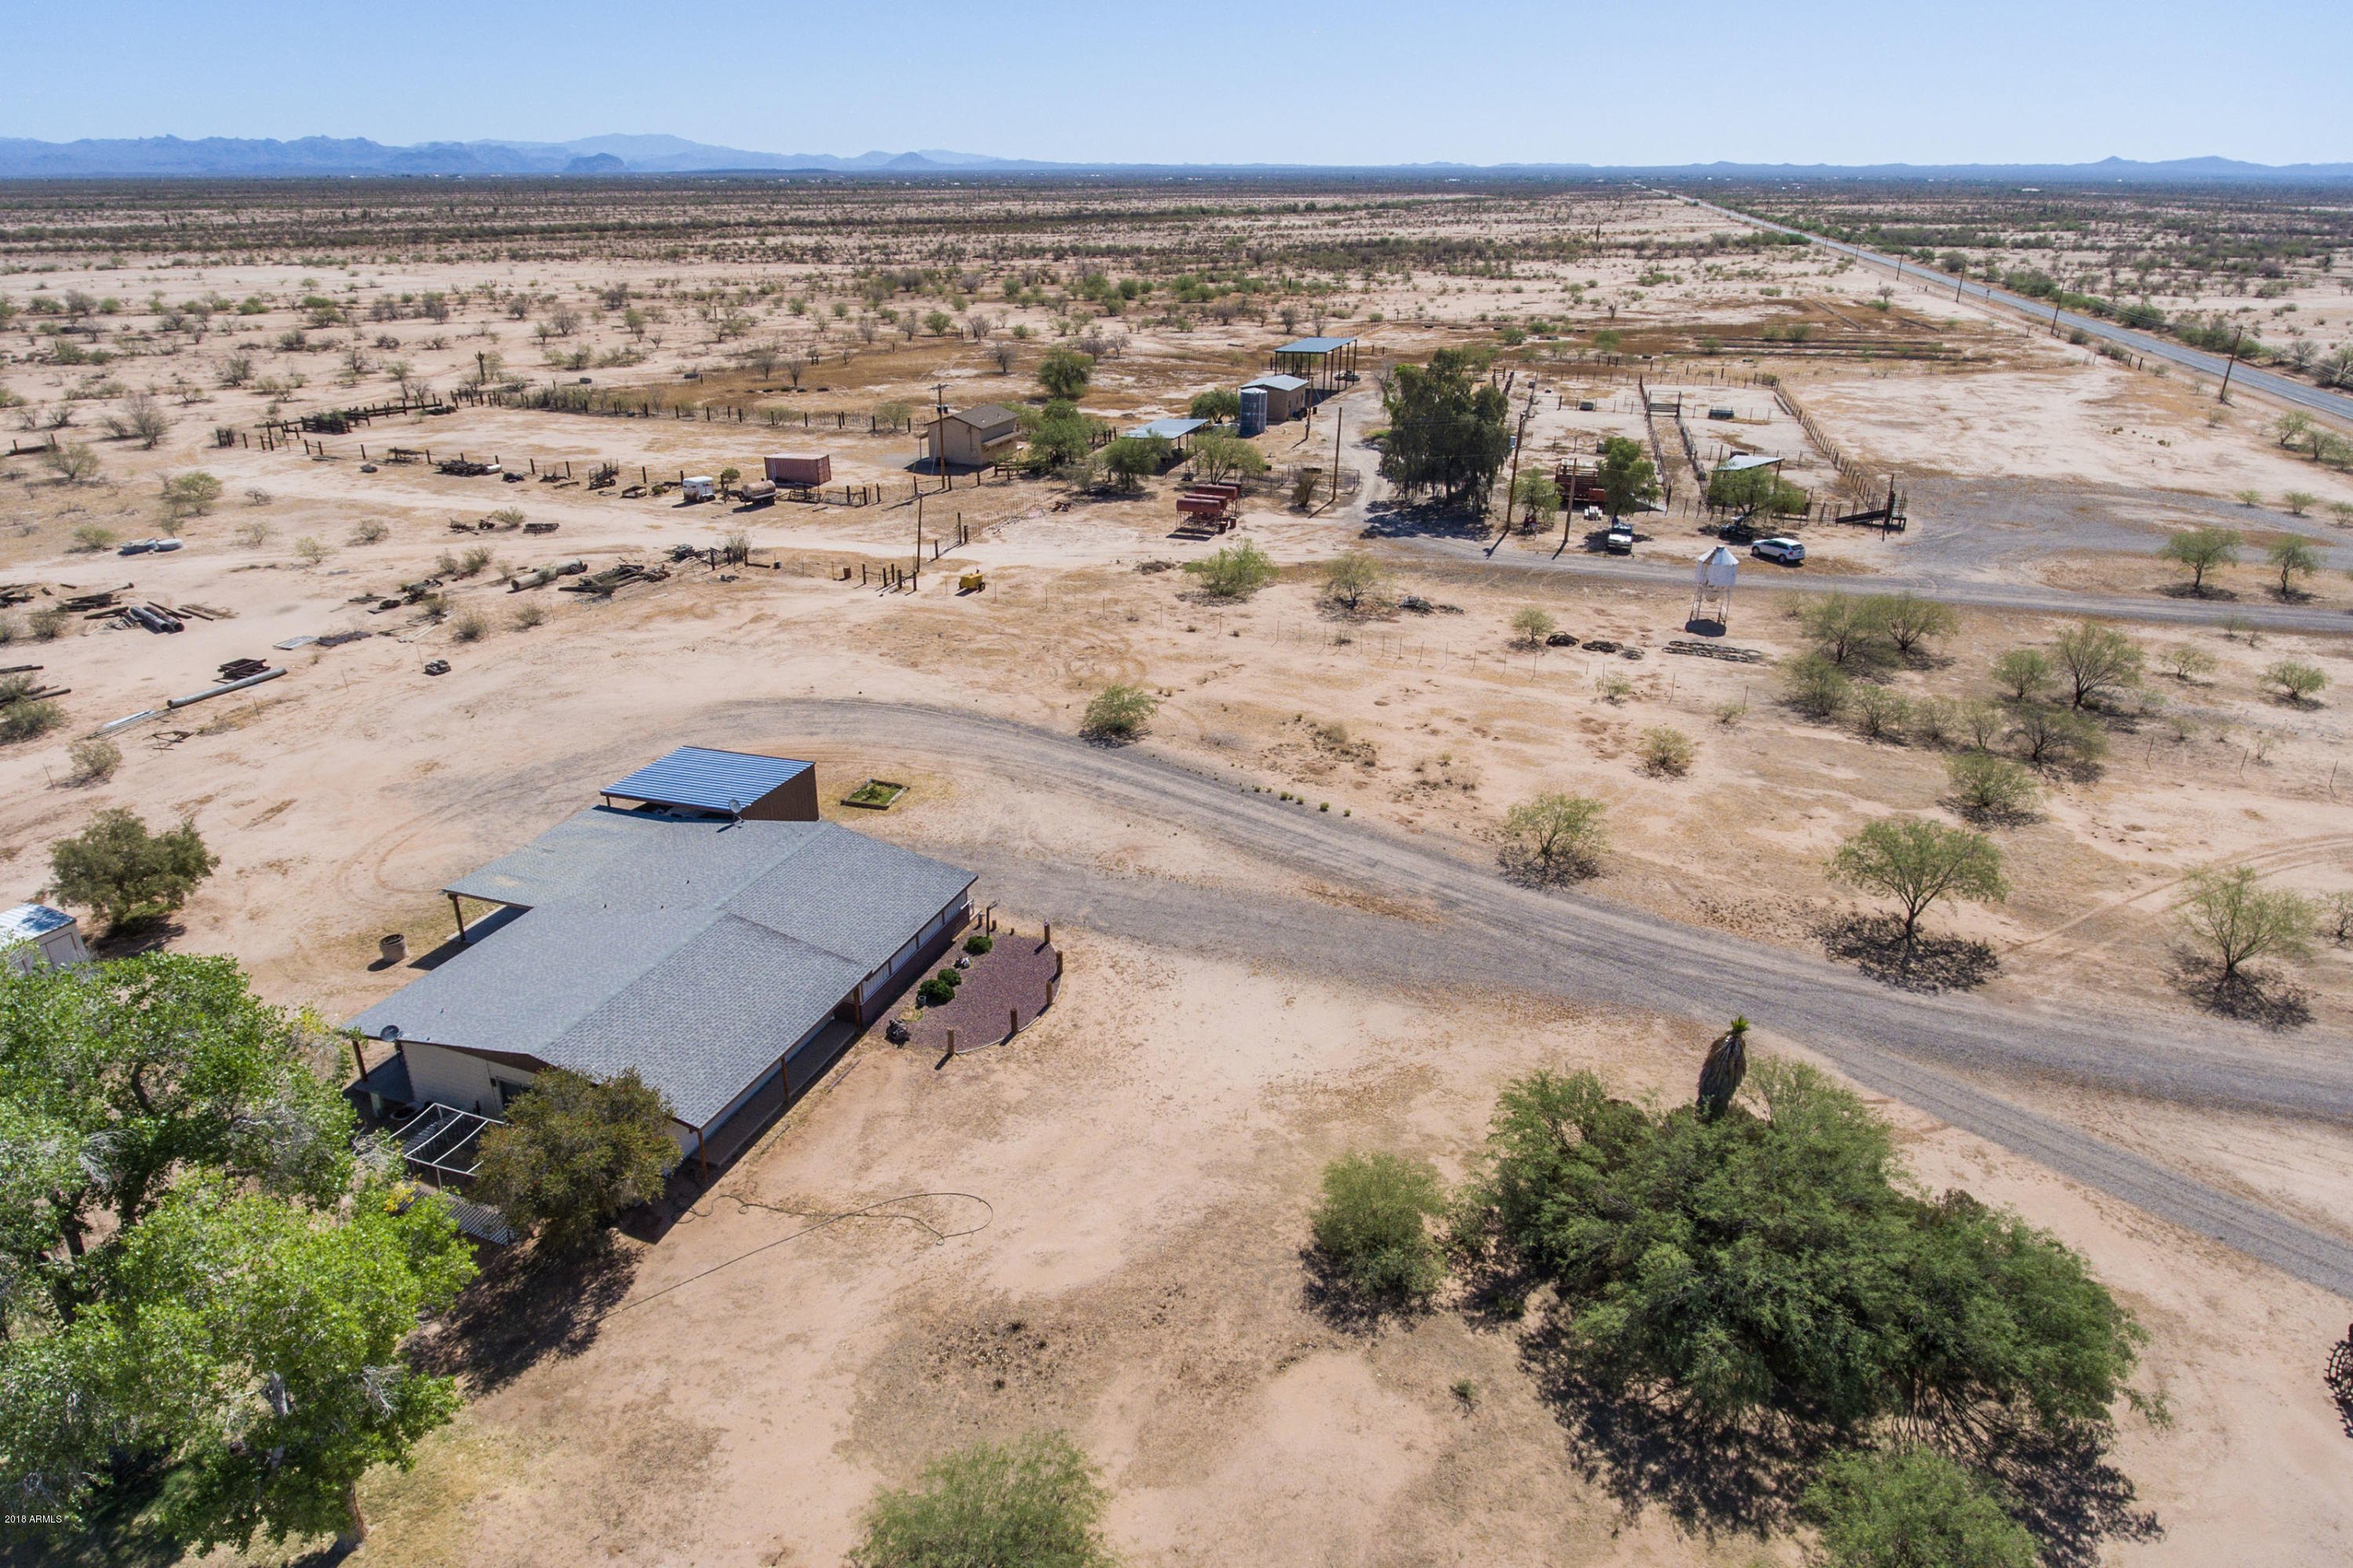 MLS 5737194 16016 E CACTUS FOREST Road, Florence, AZ Florence Horse Property for Sale